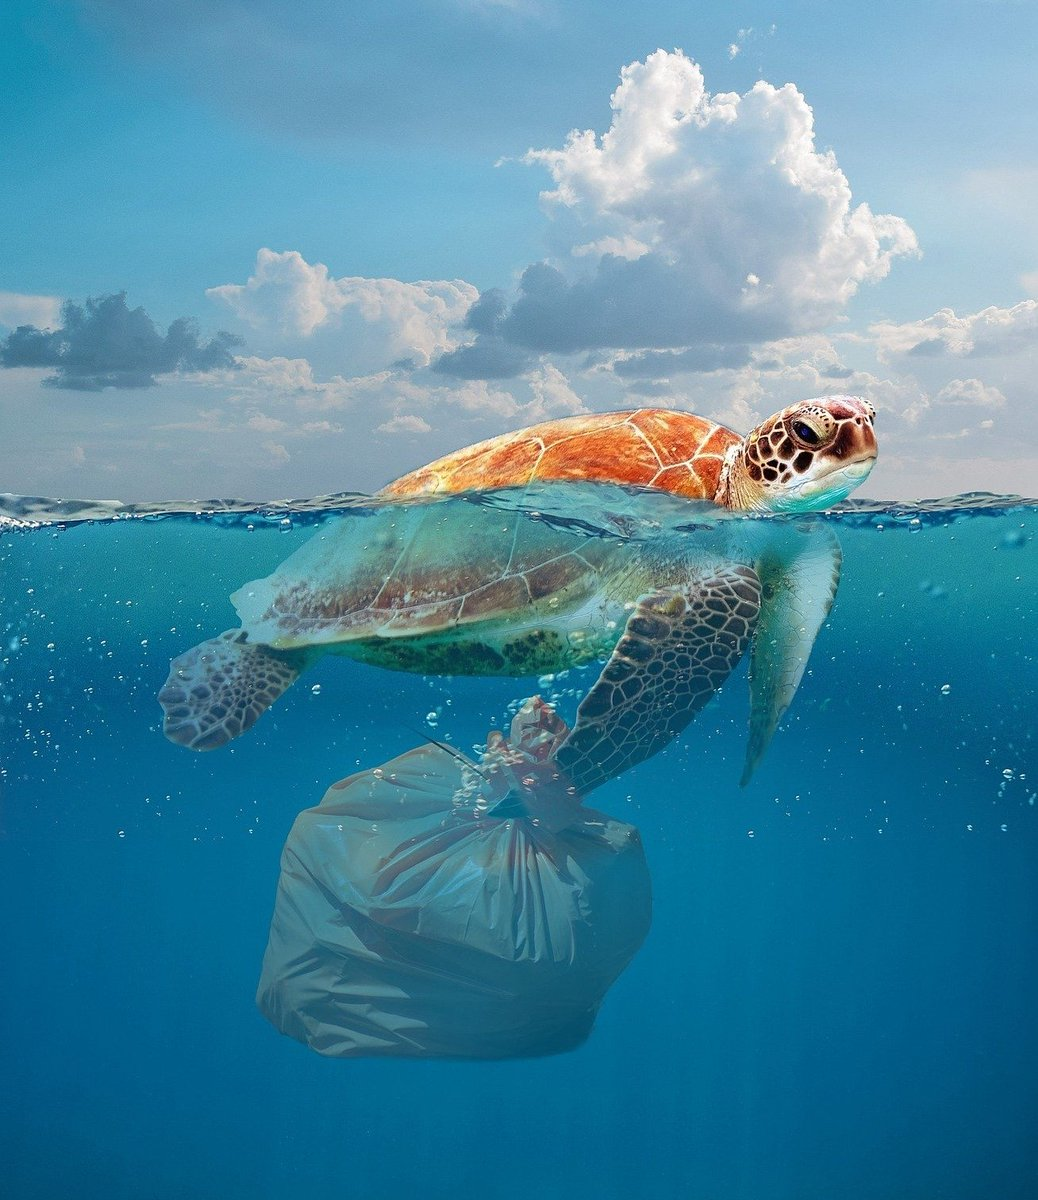 Each year tonnes of plastic enters our oceans, change is needed and change starts with us all.  @BradfordCollege students and staff, come along to the  plastic free pop up shop this Thursday 11.30-1.30, ground floor of DHB #plasticfreeliving #plasticfreeoceans #changeiscomingpic.twitter.com/LlmZpm5U9s